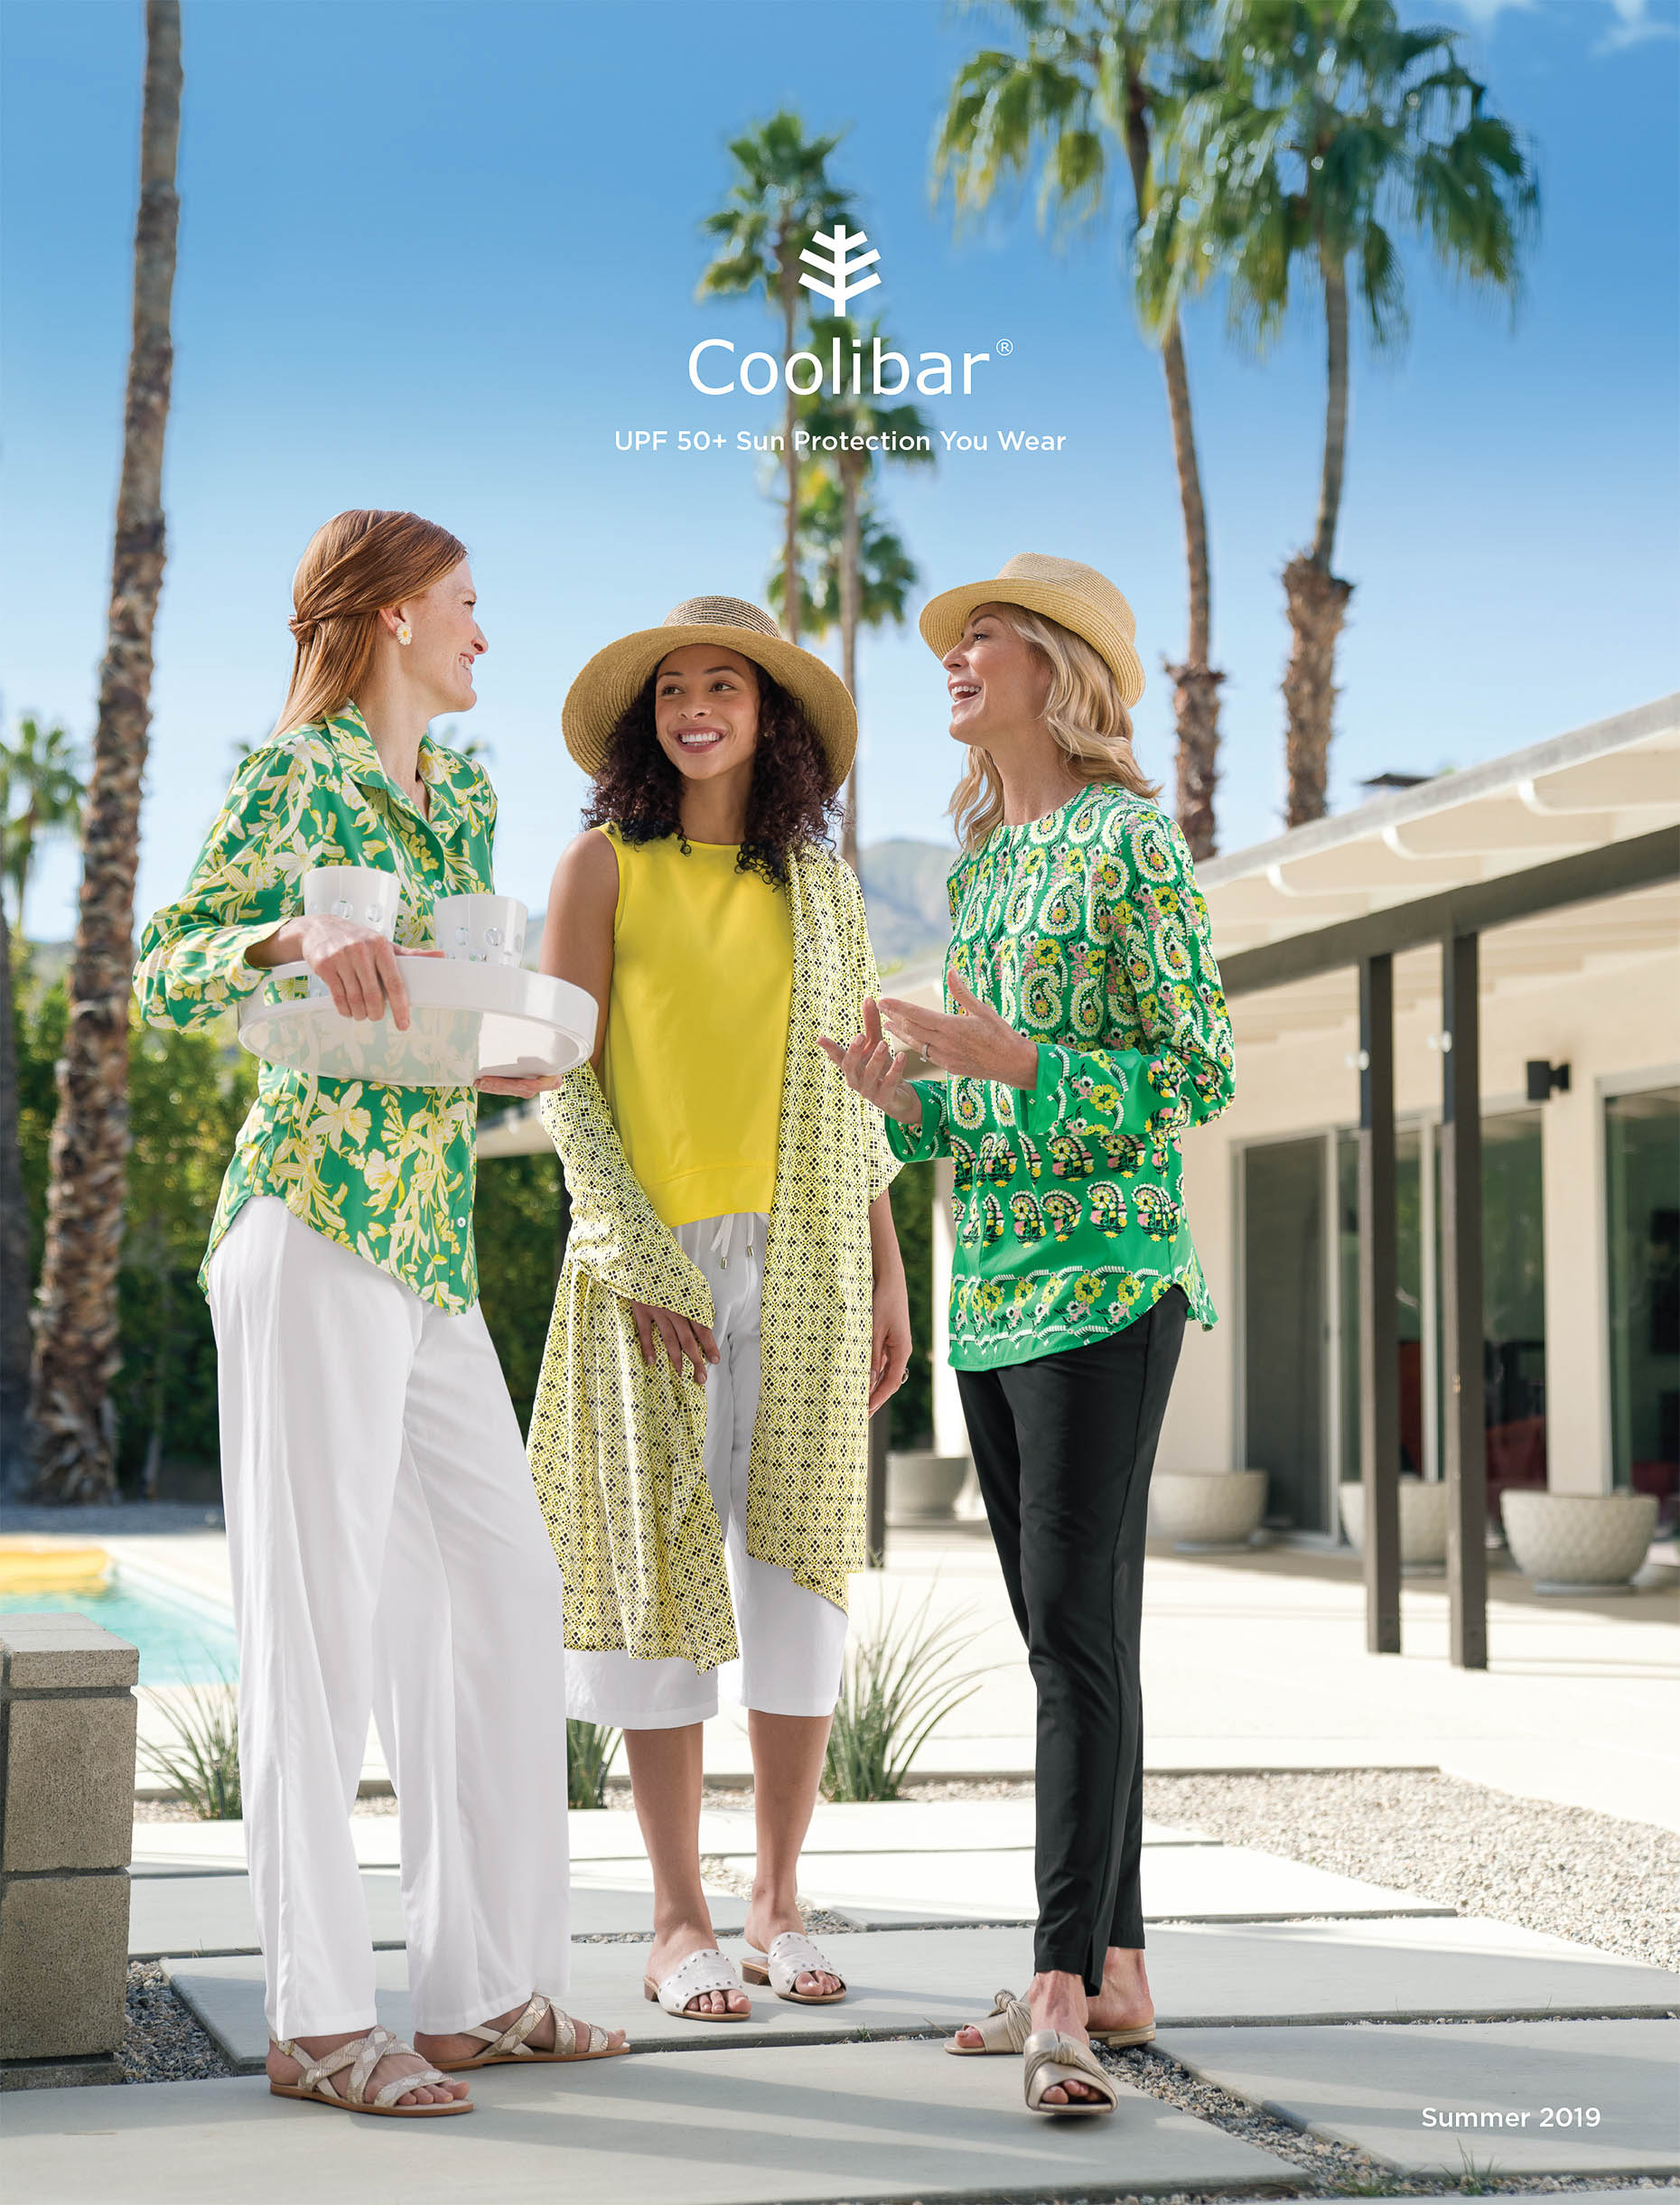 Coolibar Santa Barbara Catalog Cover 5